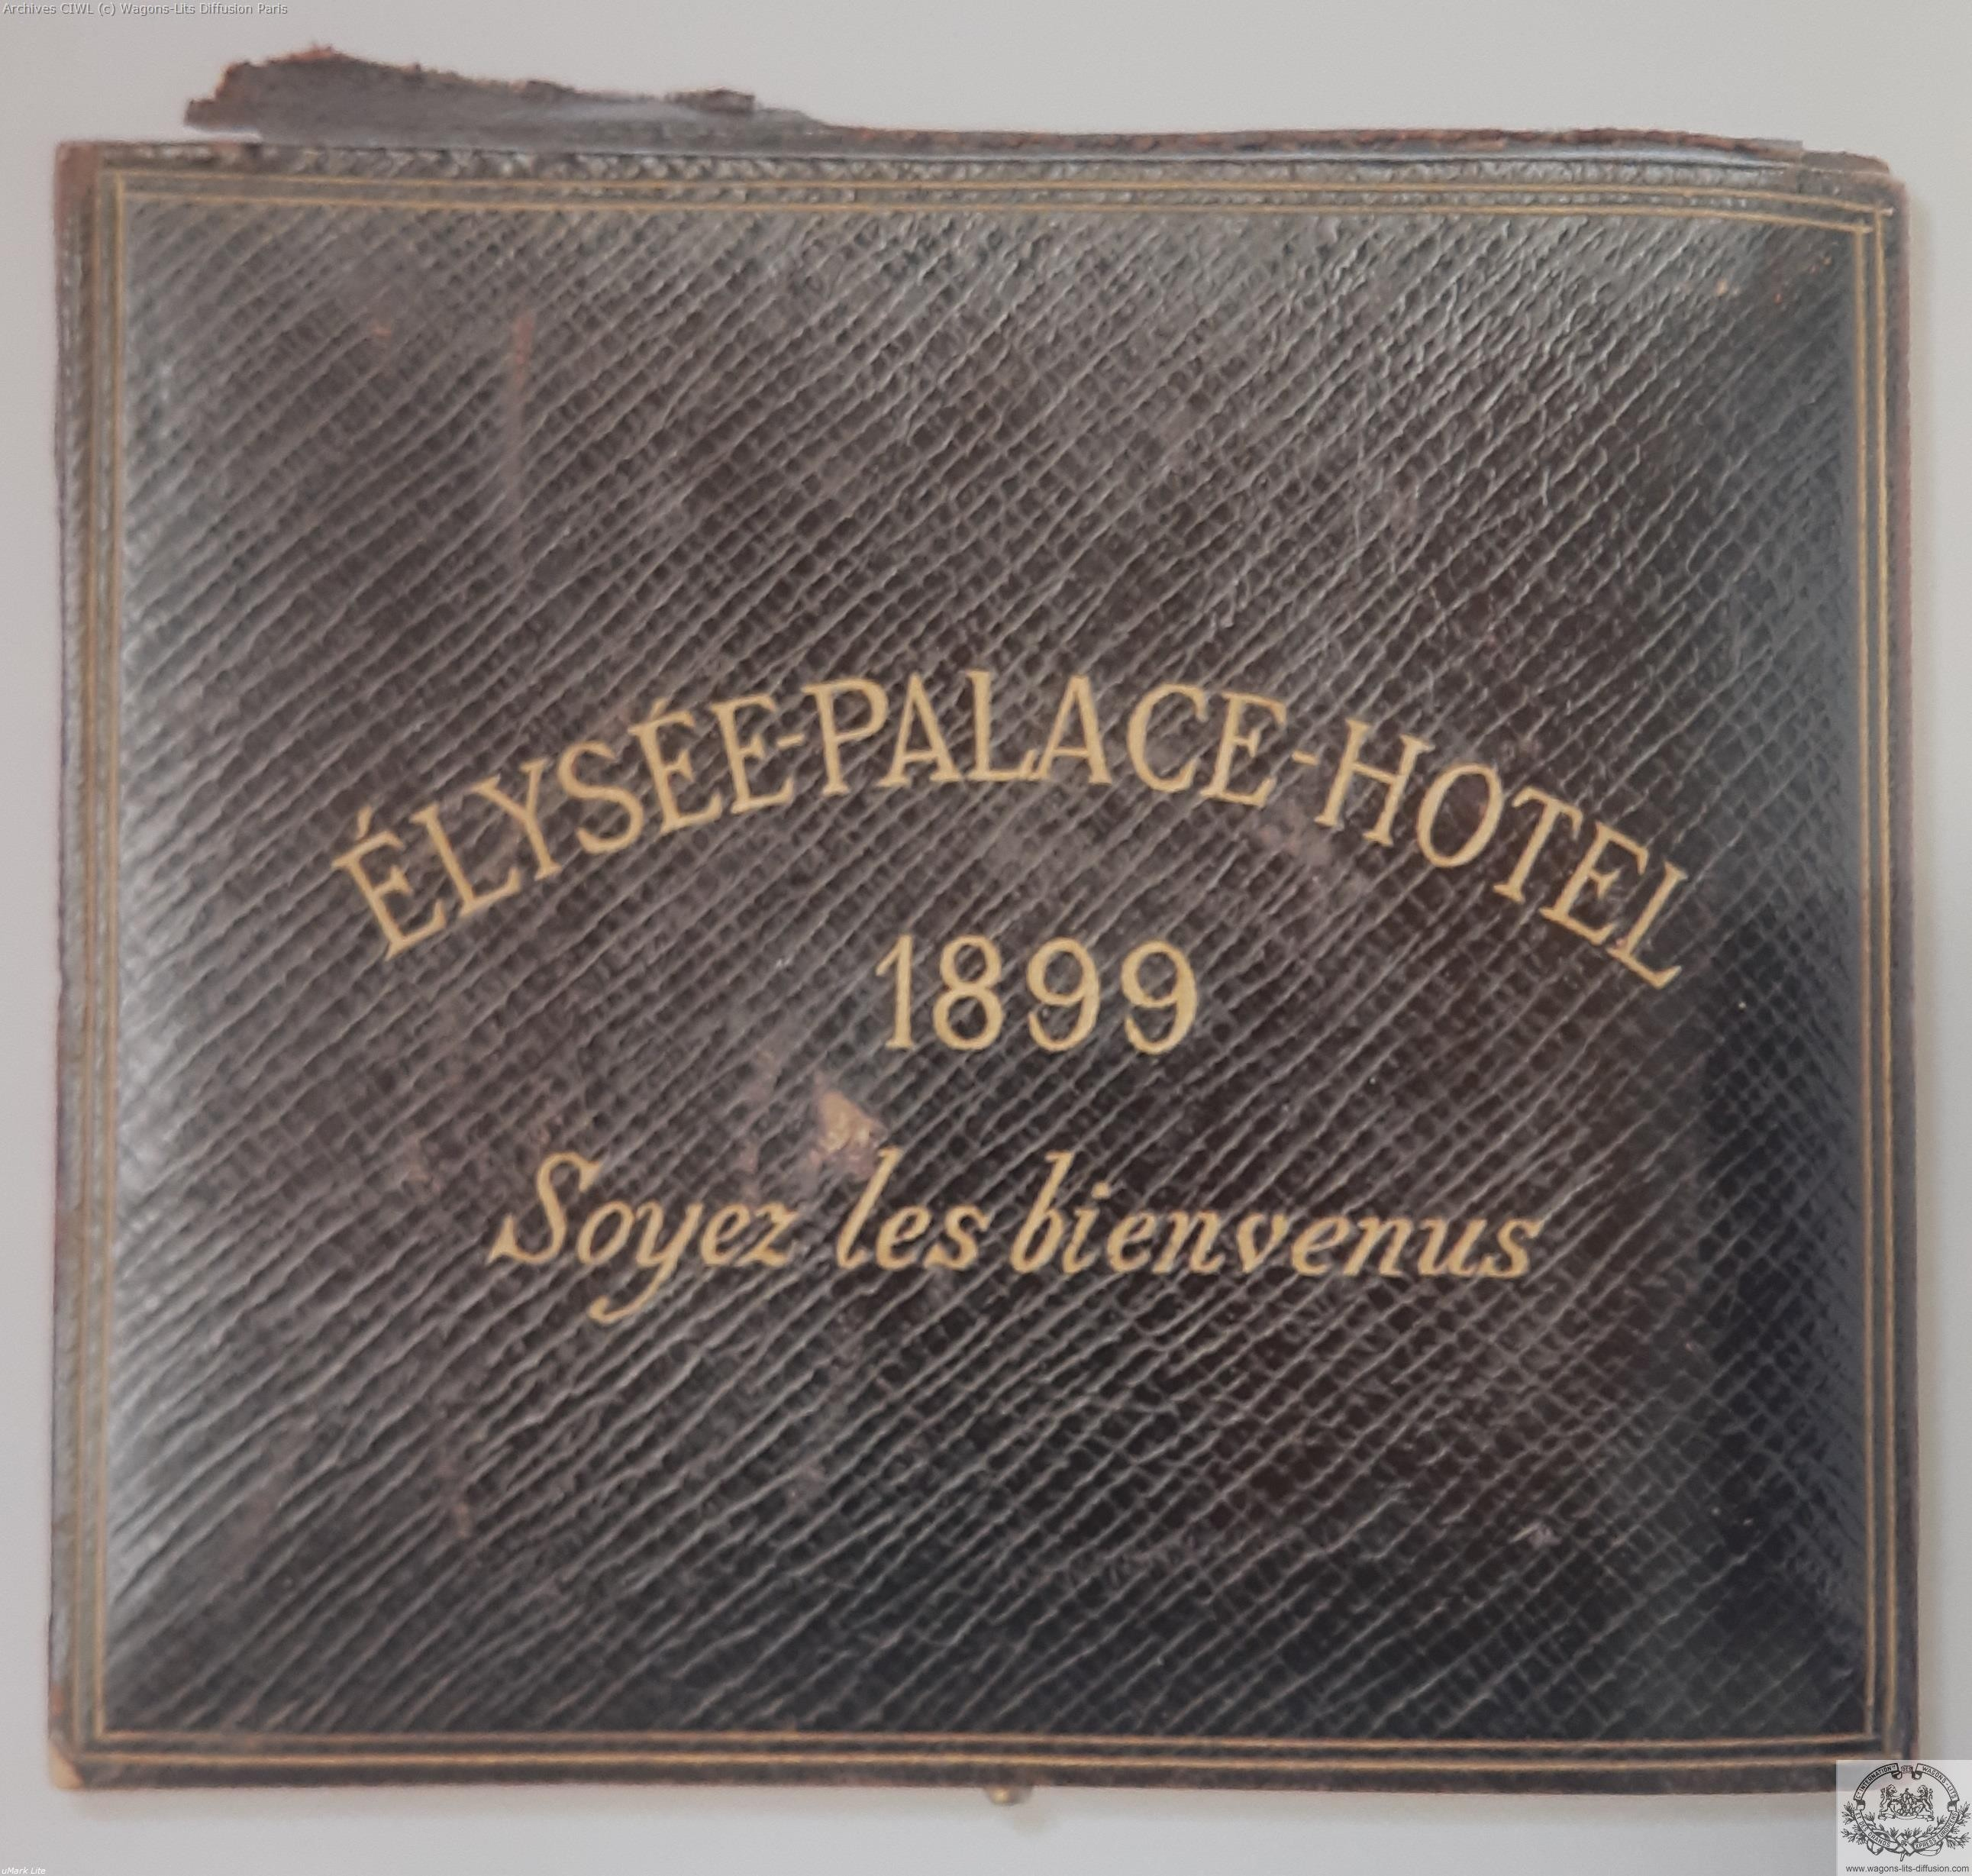 Wl elysees palace hotel paris 1899 gift